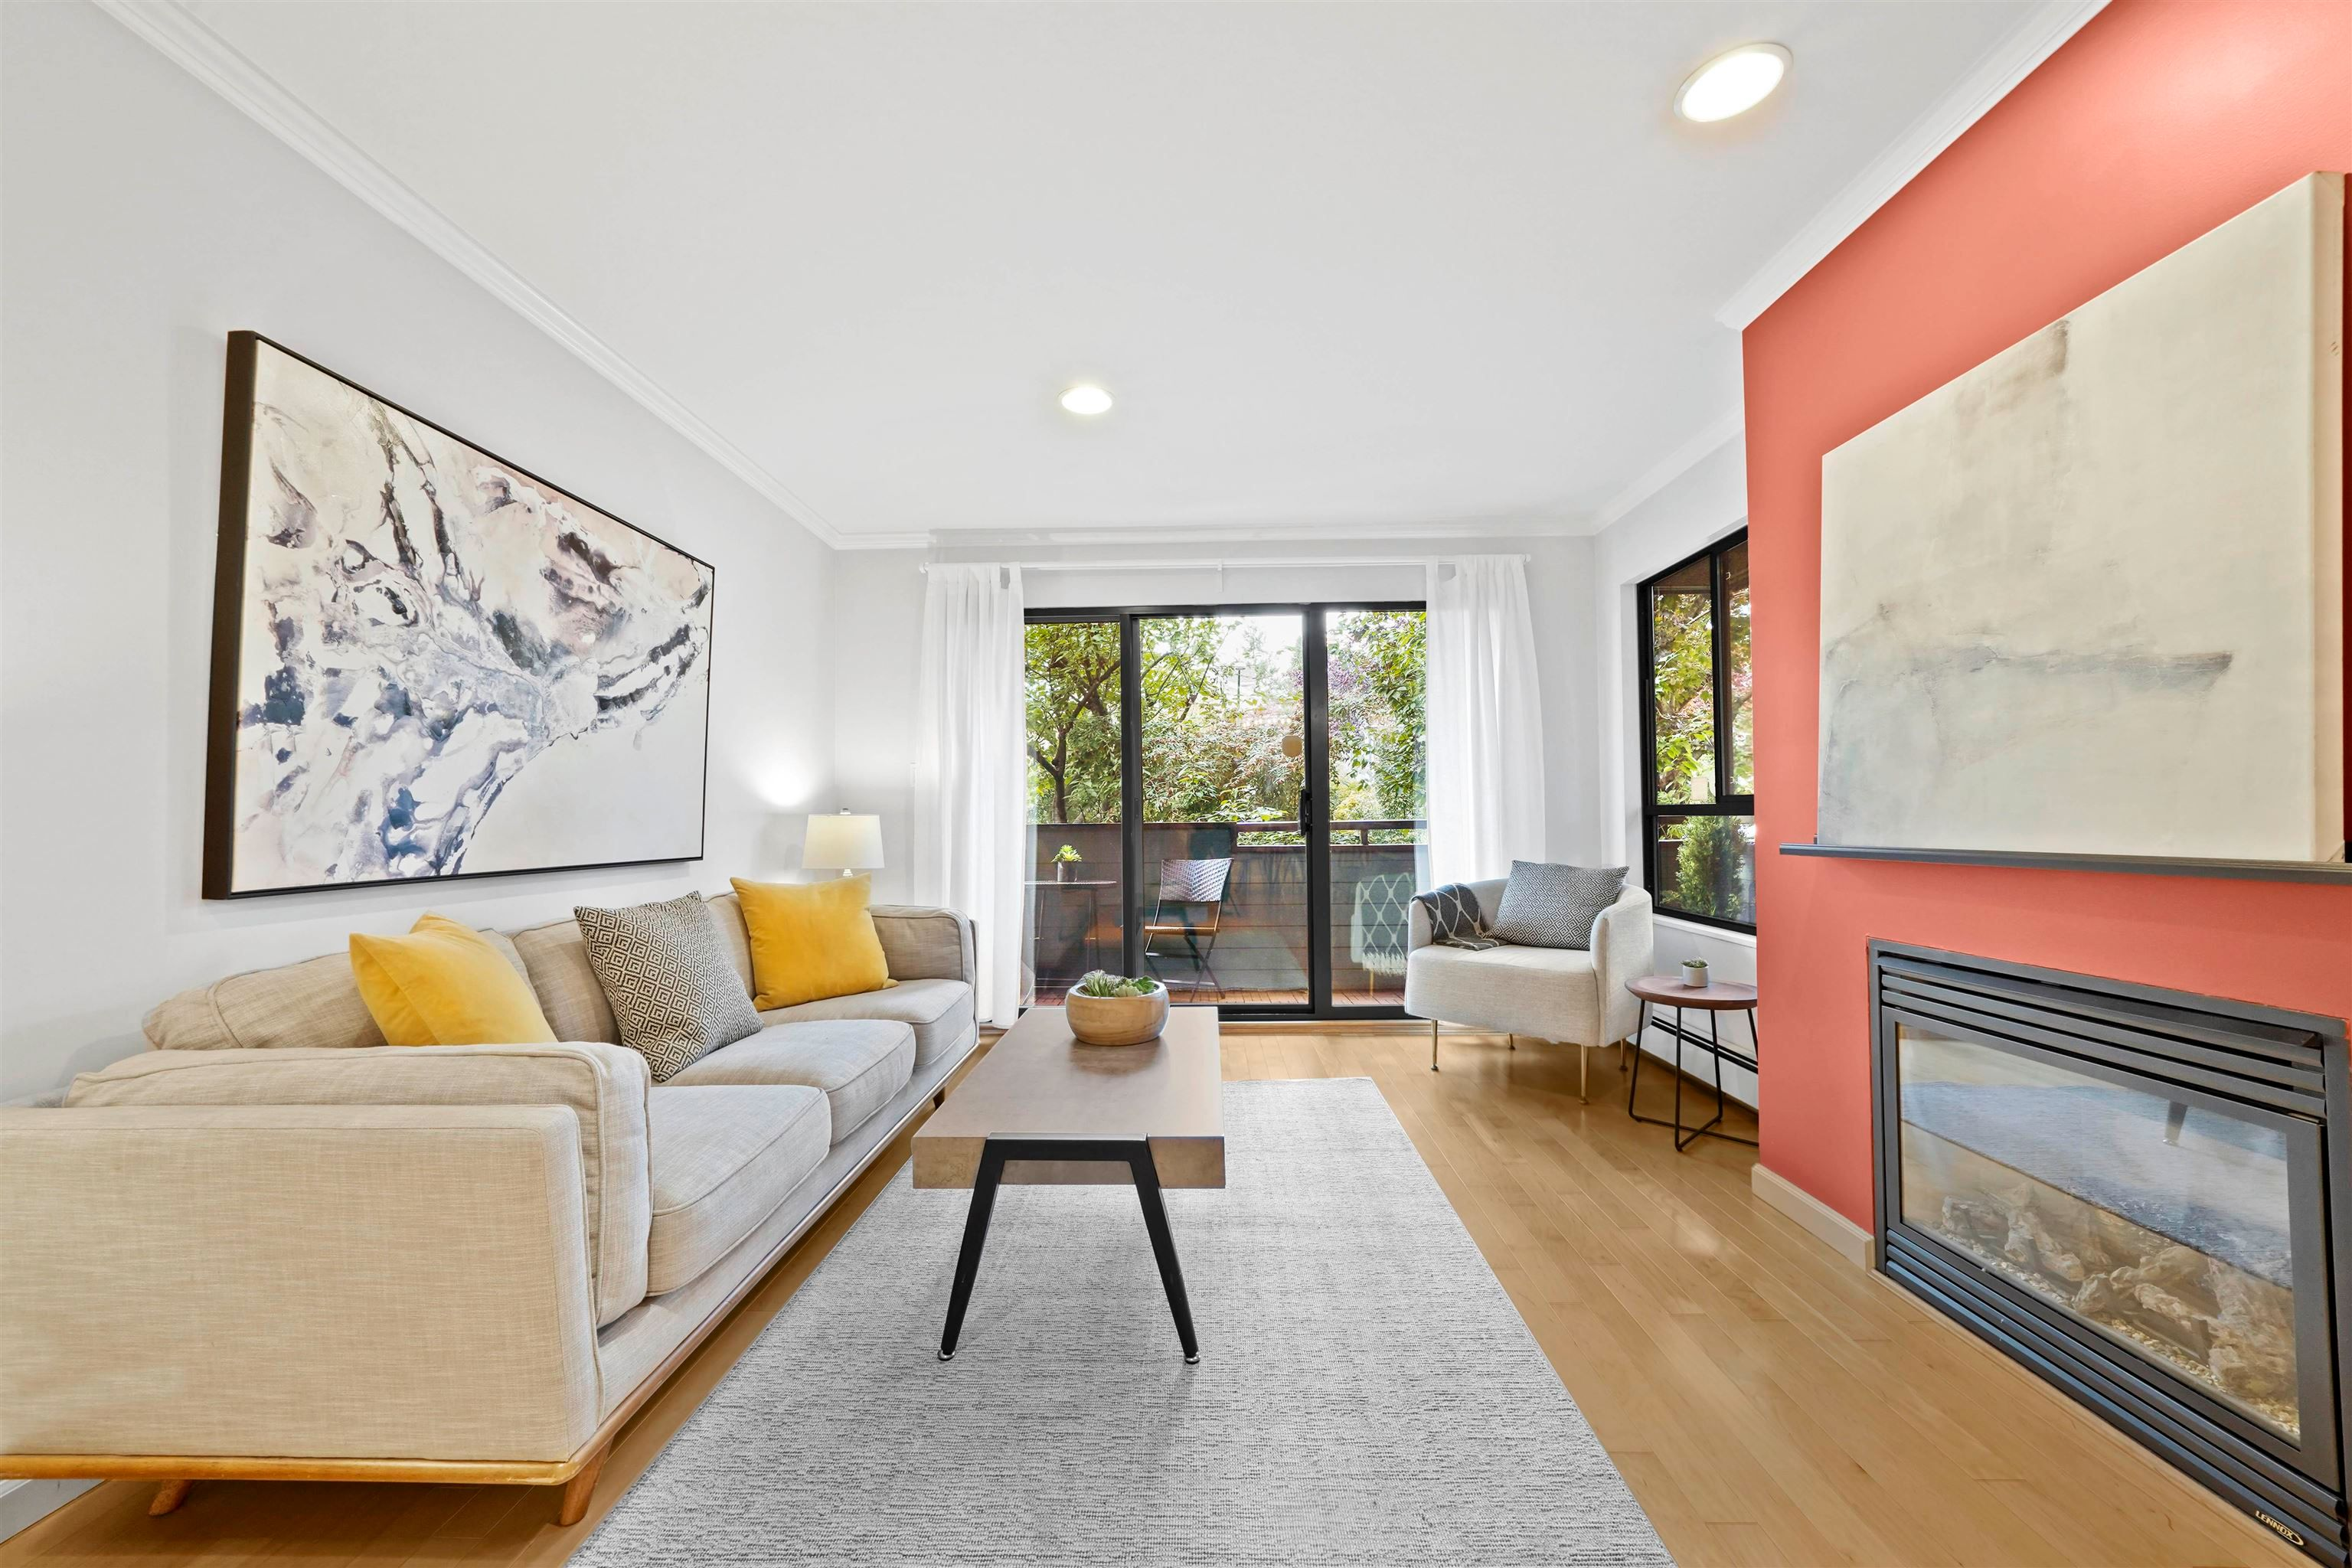 Main Photo: 202 1516 CHARLES Street in Vancouver: Grandview Woodland Condo for sale (Vancouver East)  : MLS®# R2624161